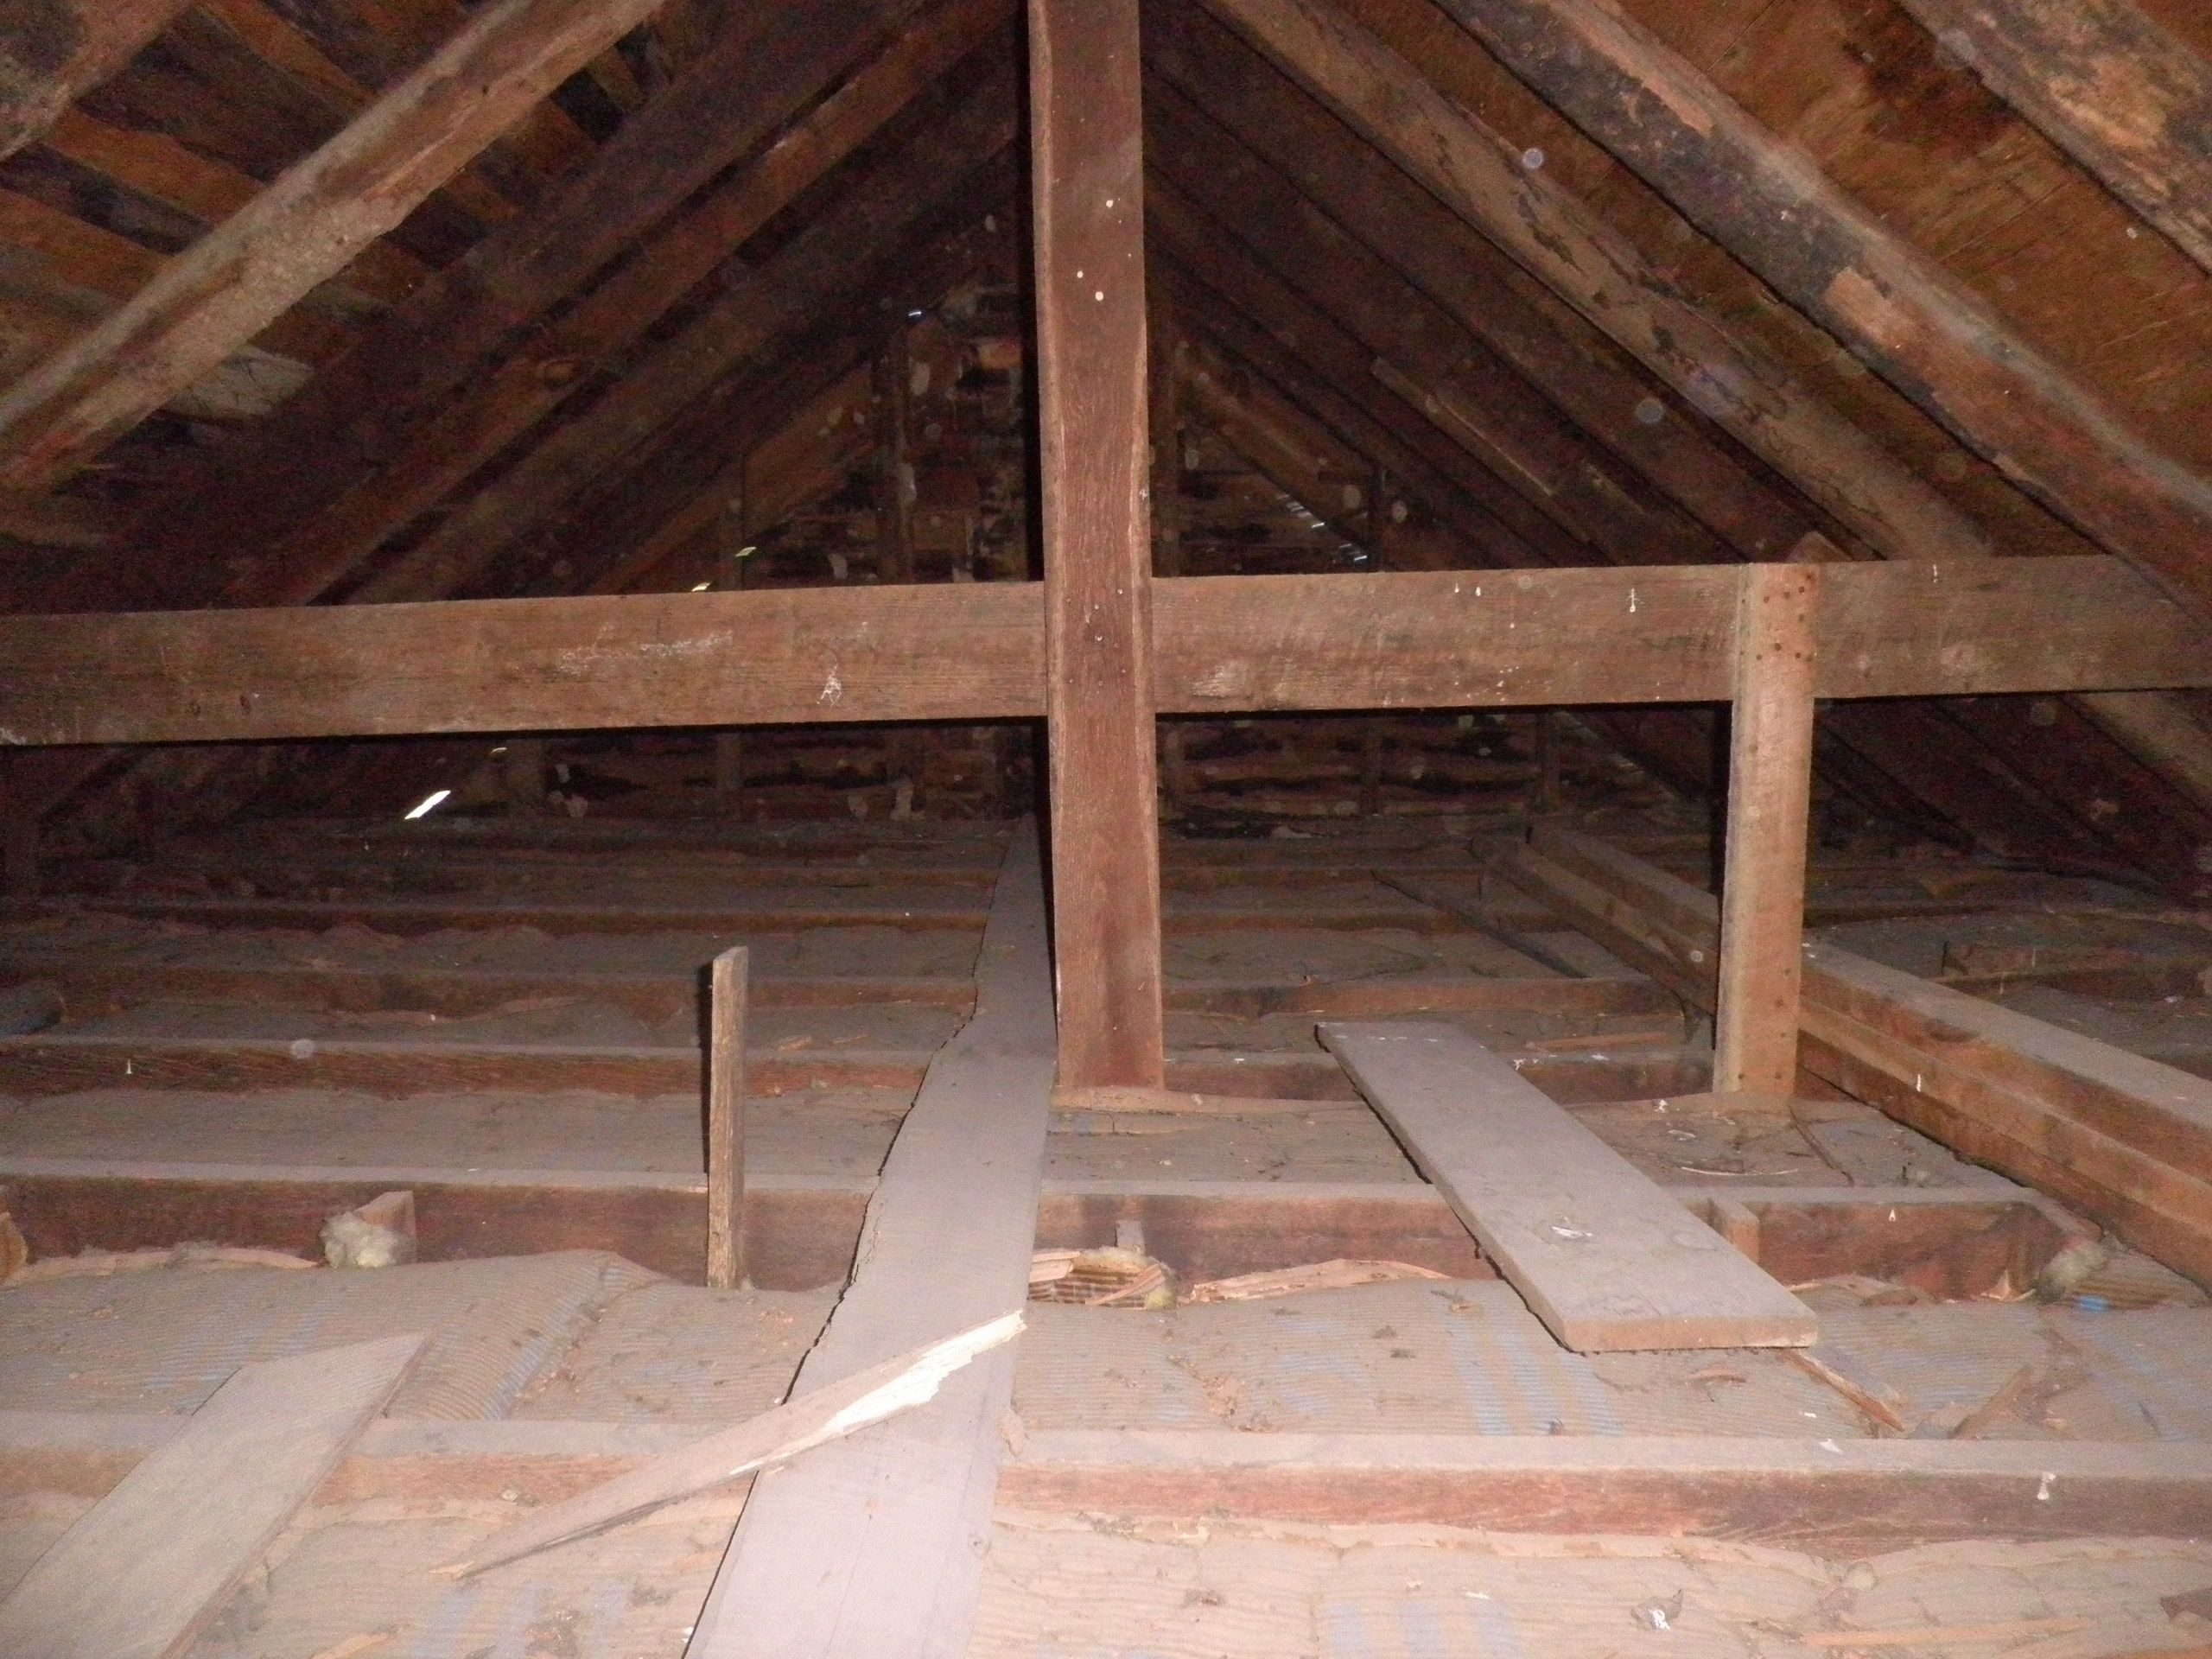 Great example of an attic in need of more insulation. Easy